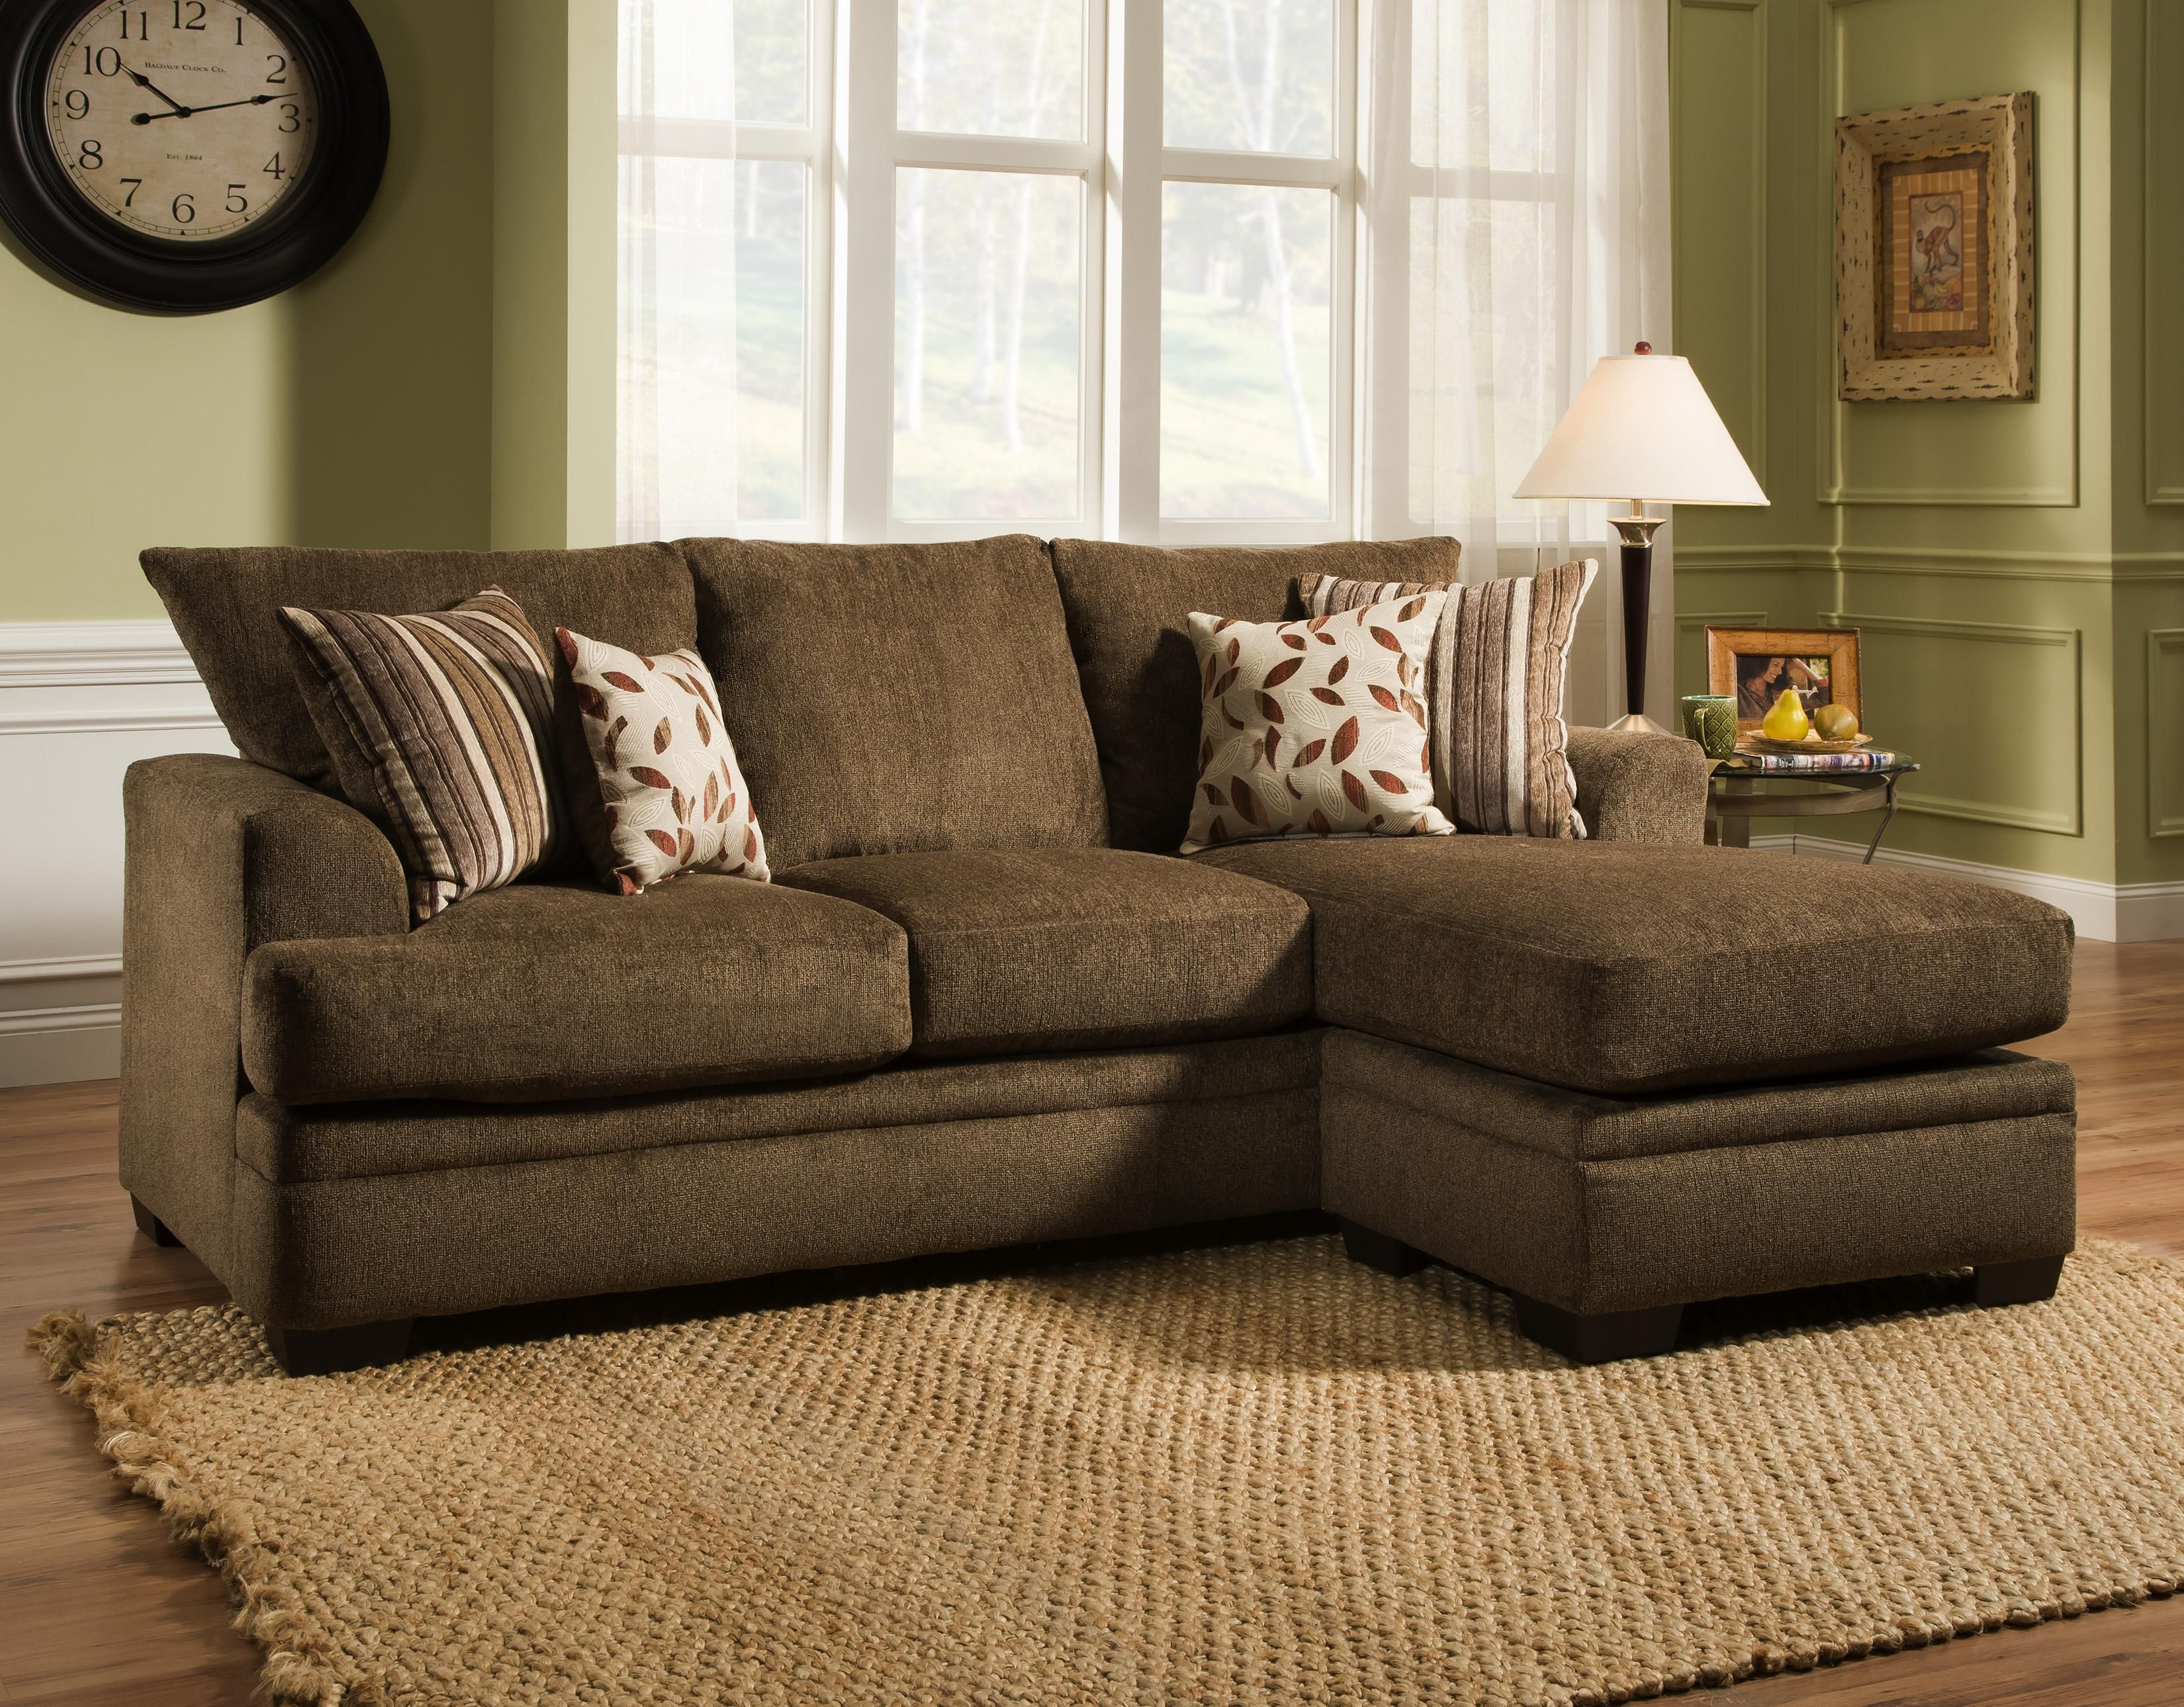 3650 Sofa Chaise By Peak Living Chelsea Home Furniture American